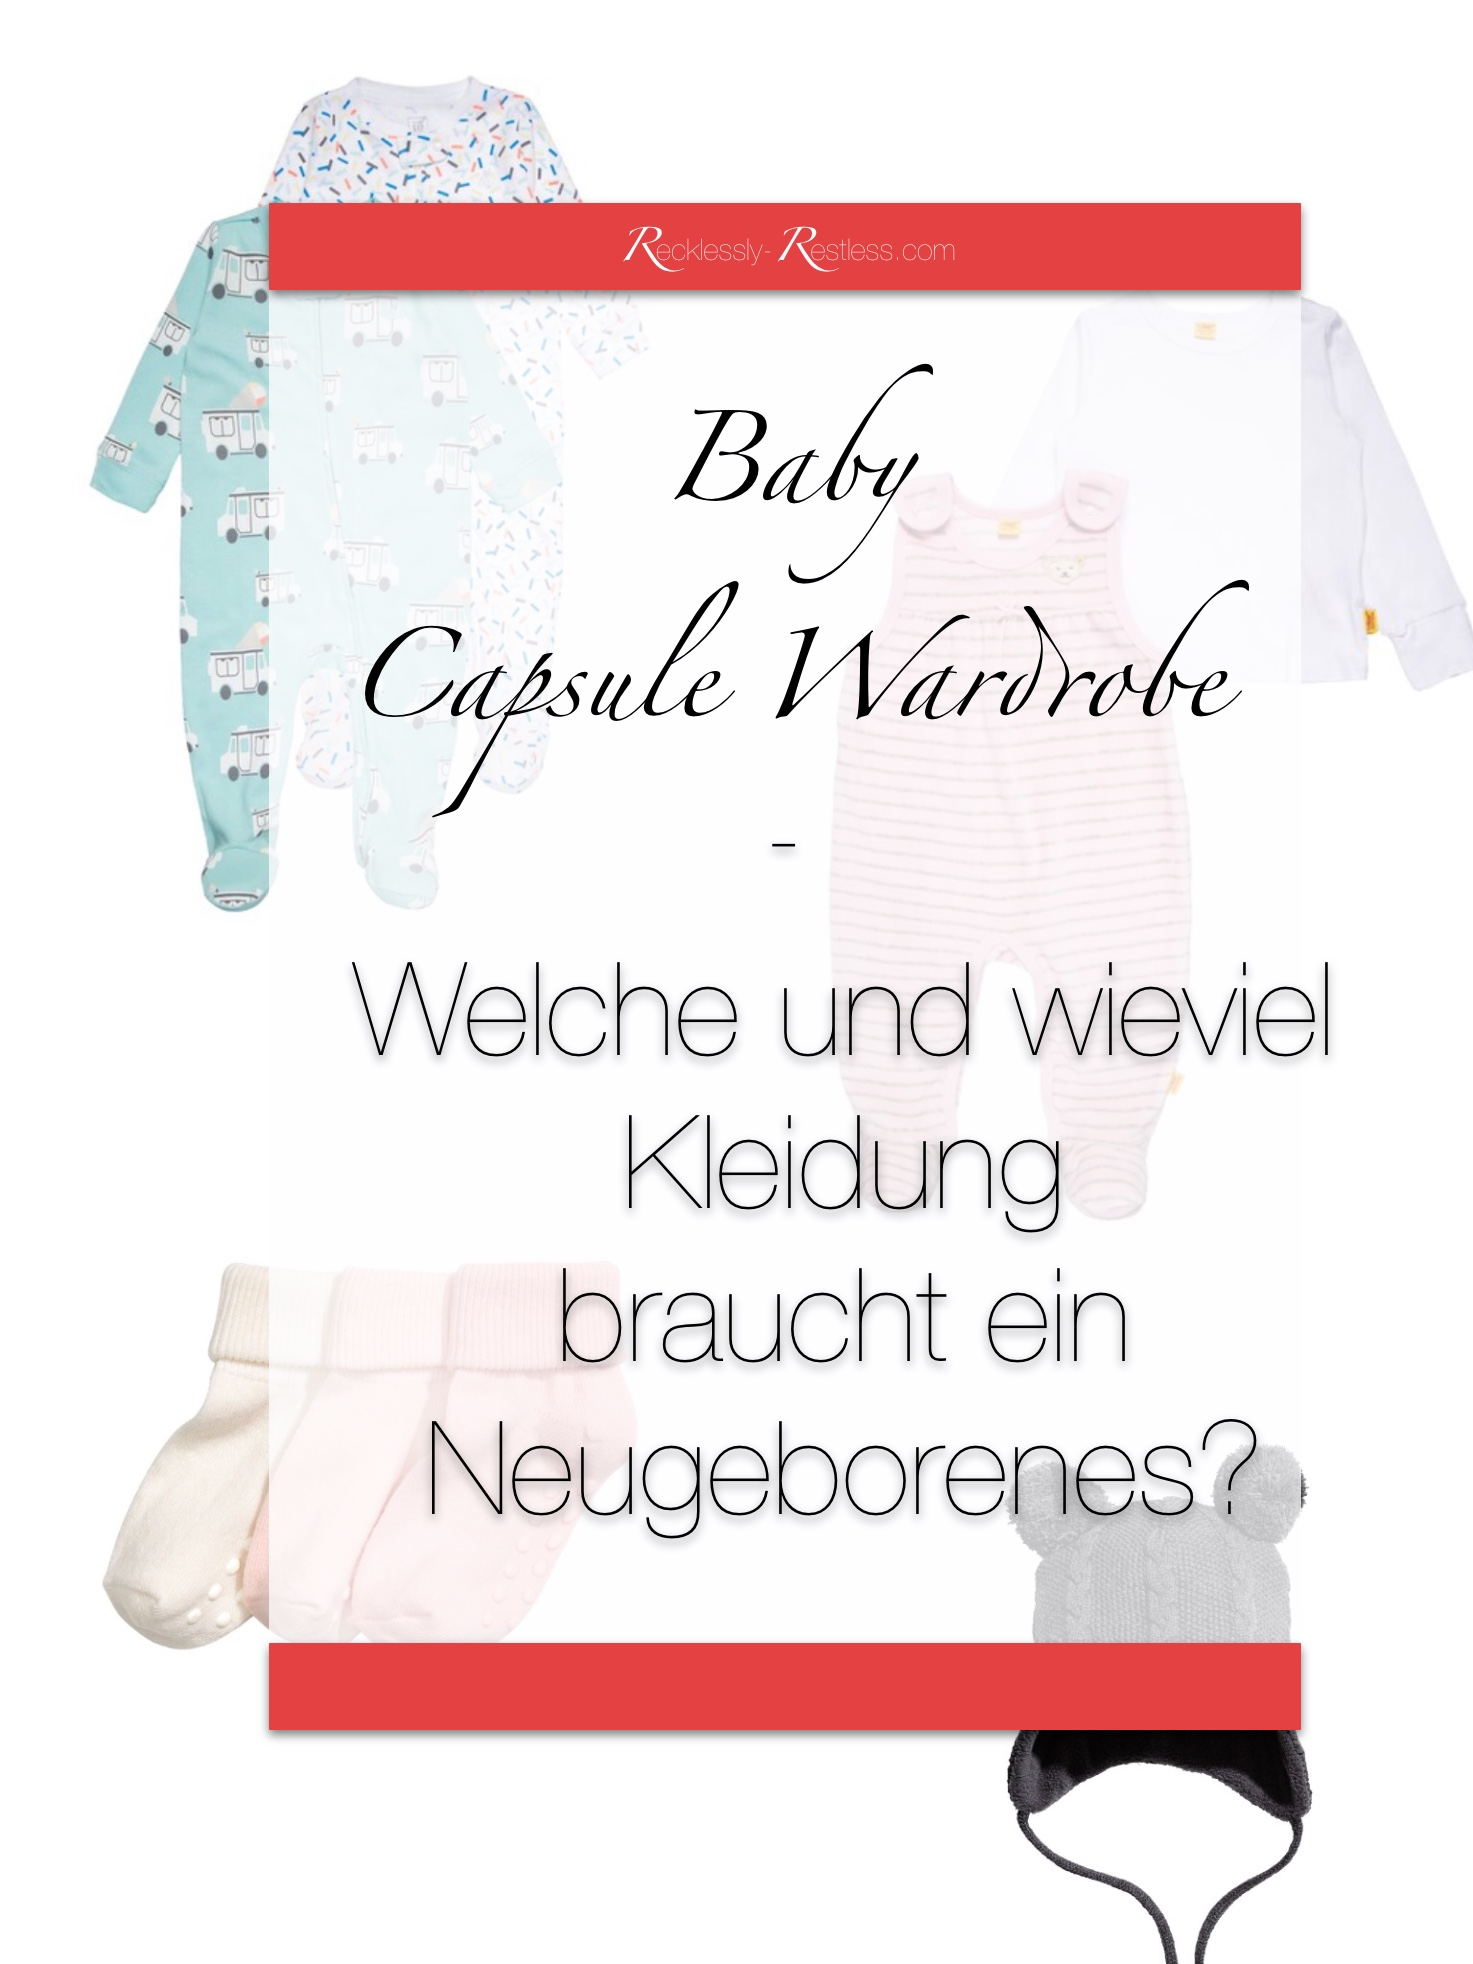 baby capsule wardrobe kleidung f r neugeborene recklessly. Black Bedroom Furniture Sets. Home Design Ideas